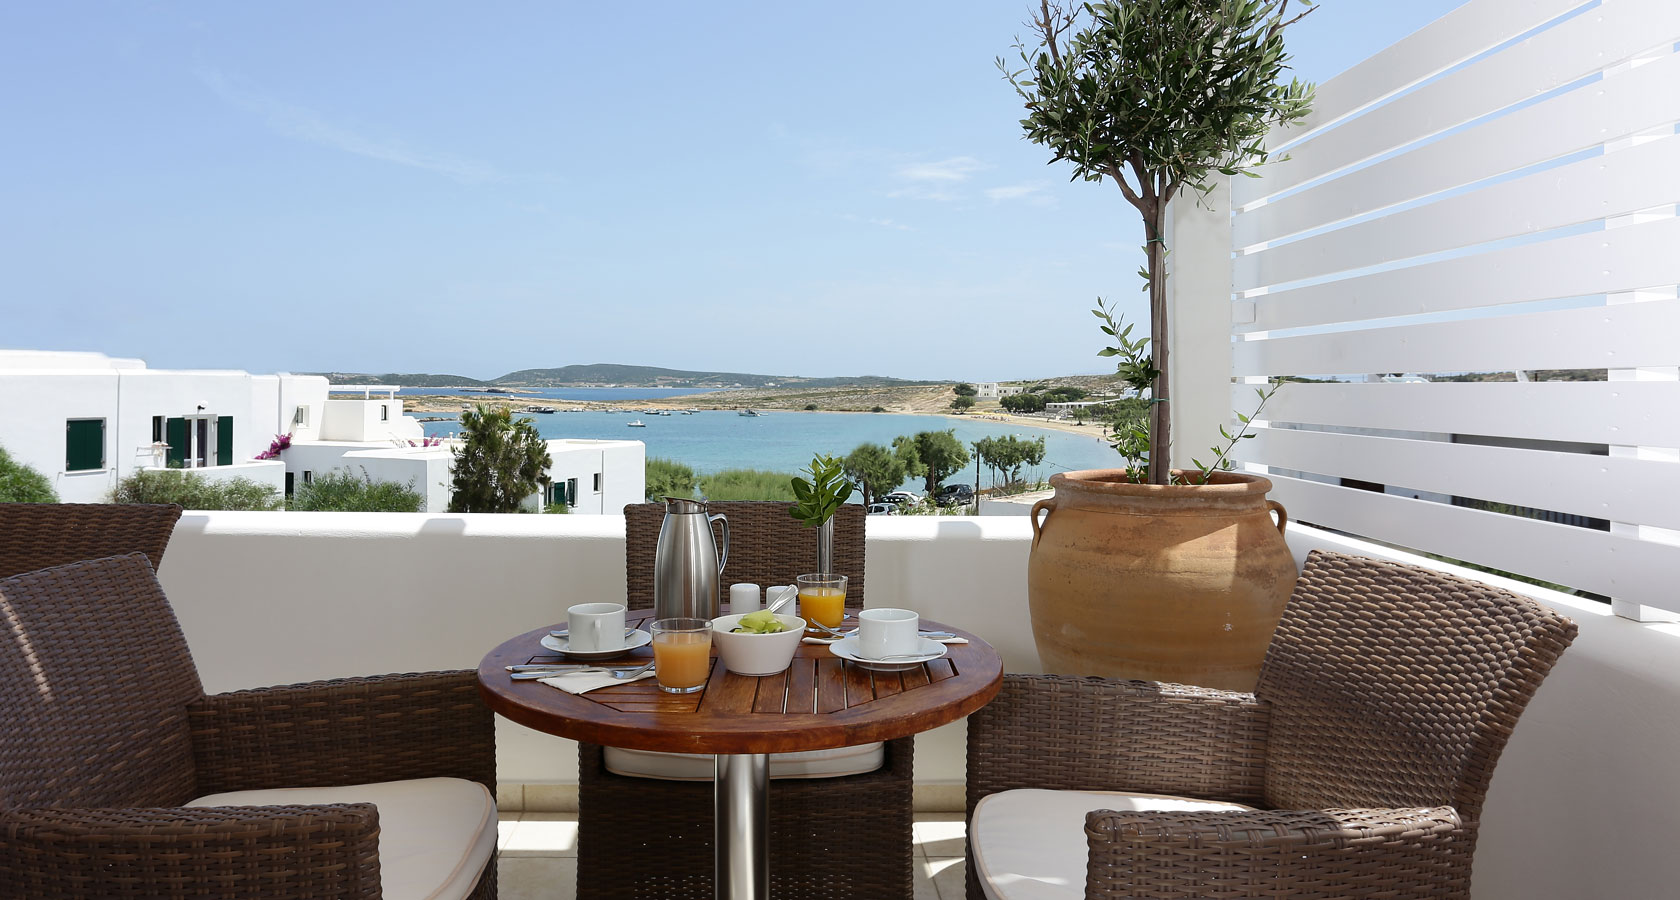 Stelia Mare sea view hotel in Naoussa, Paros